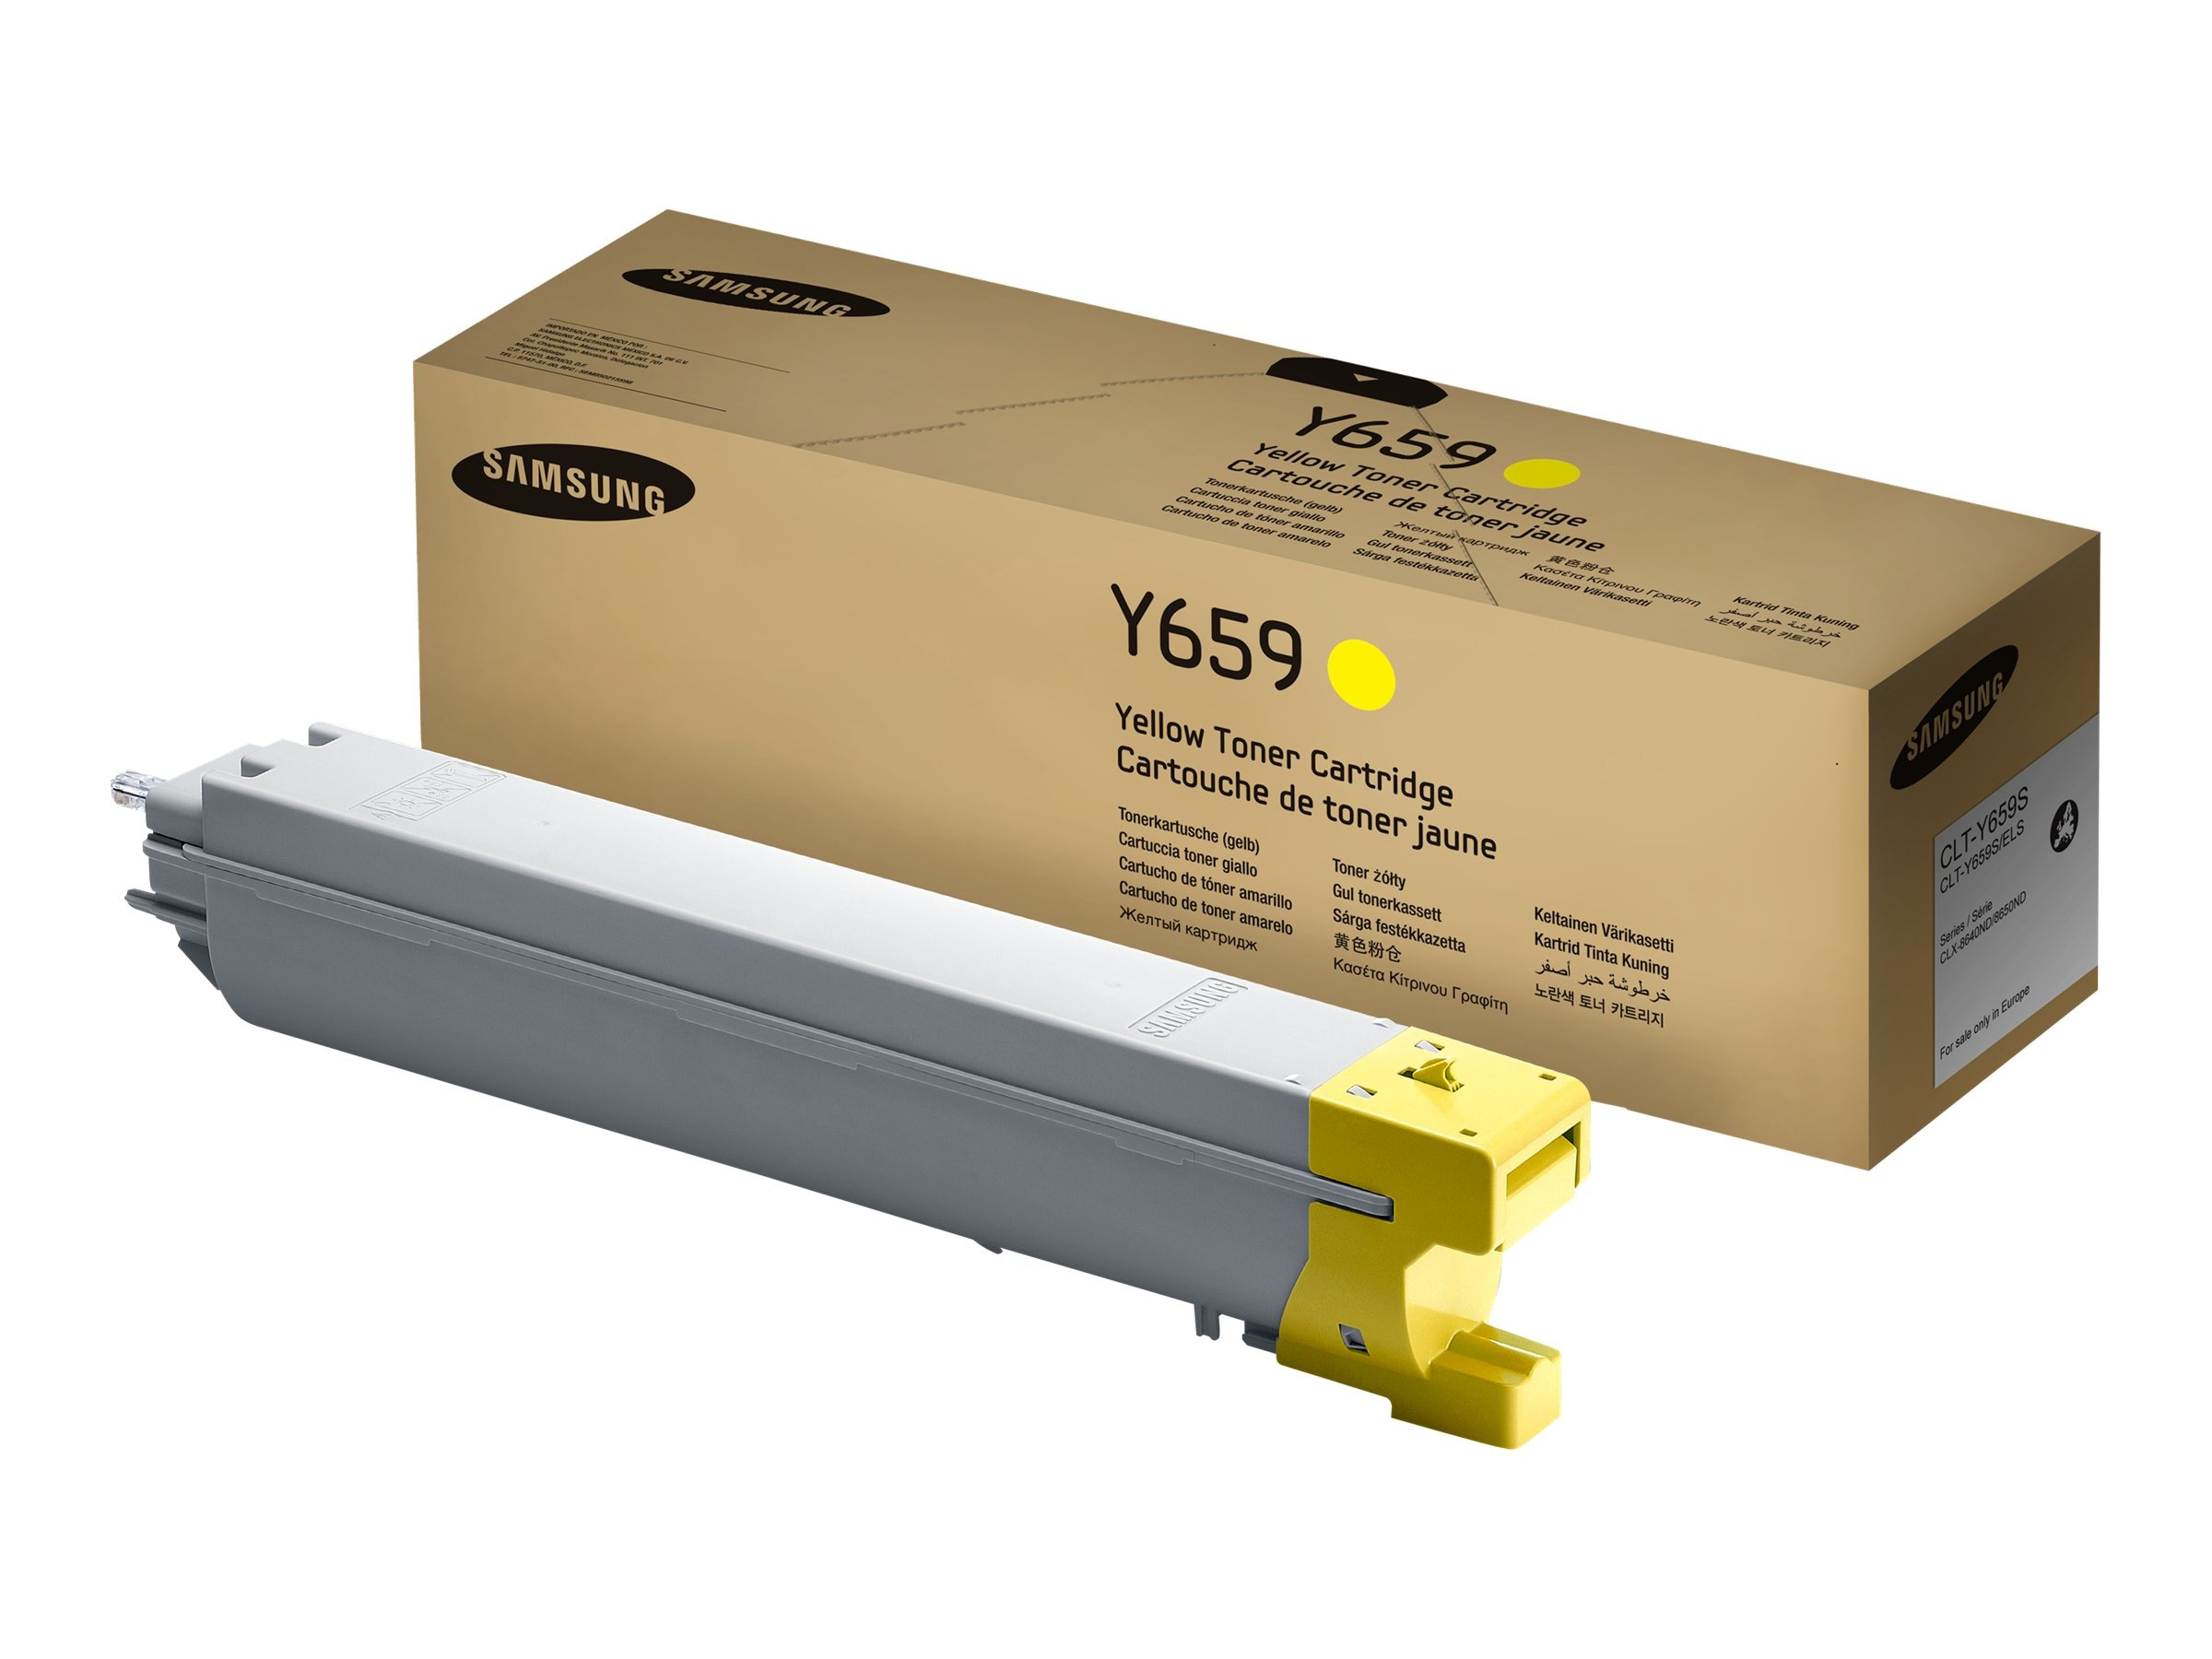 Samsung Yellow Toner Cartridge for CLX-8640ND & CLX-8650ND Color Multifunction Laser Printers, CLT-Y659S